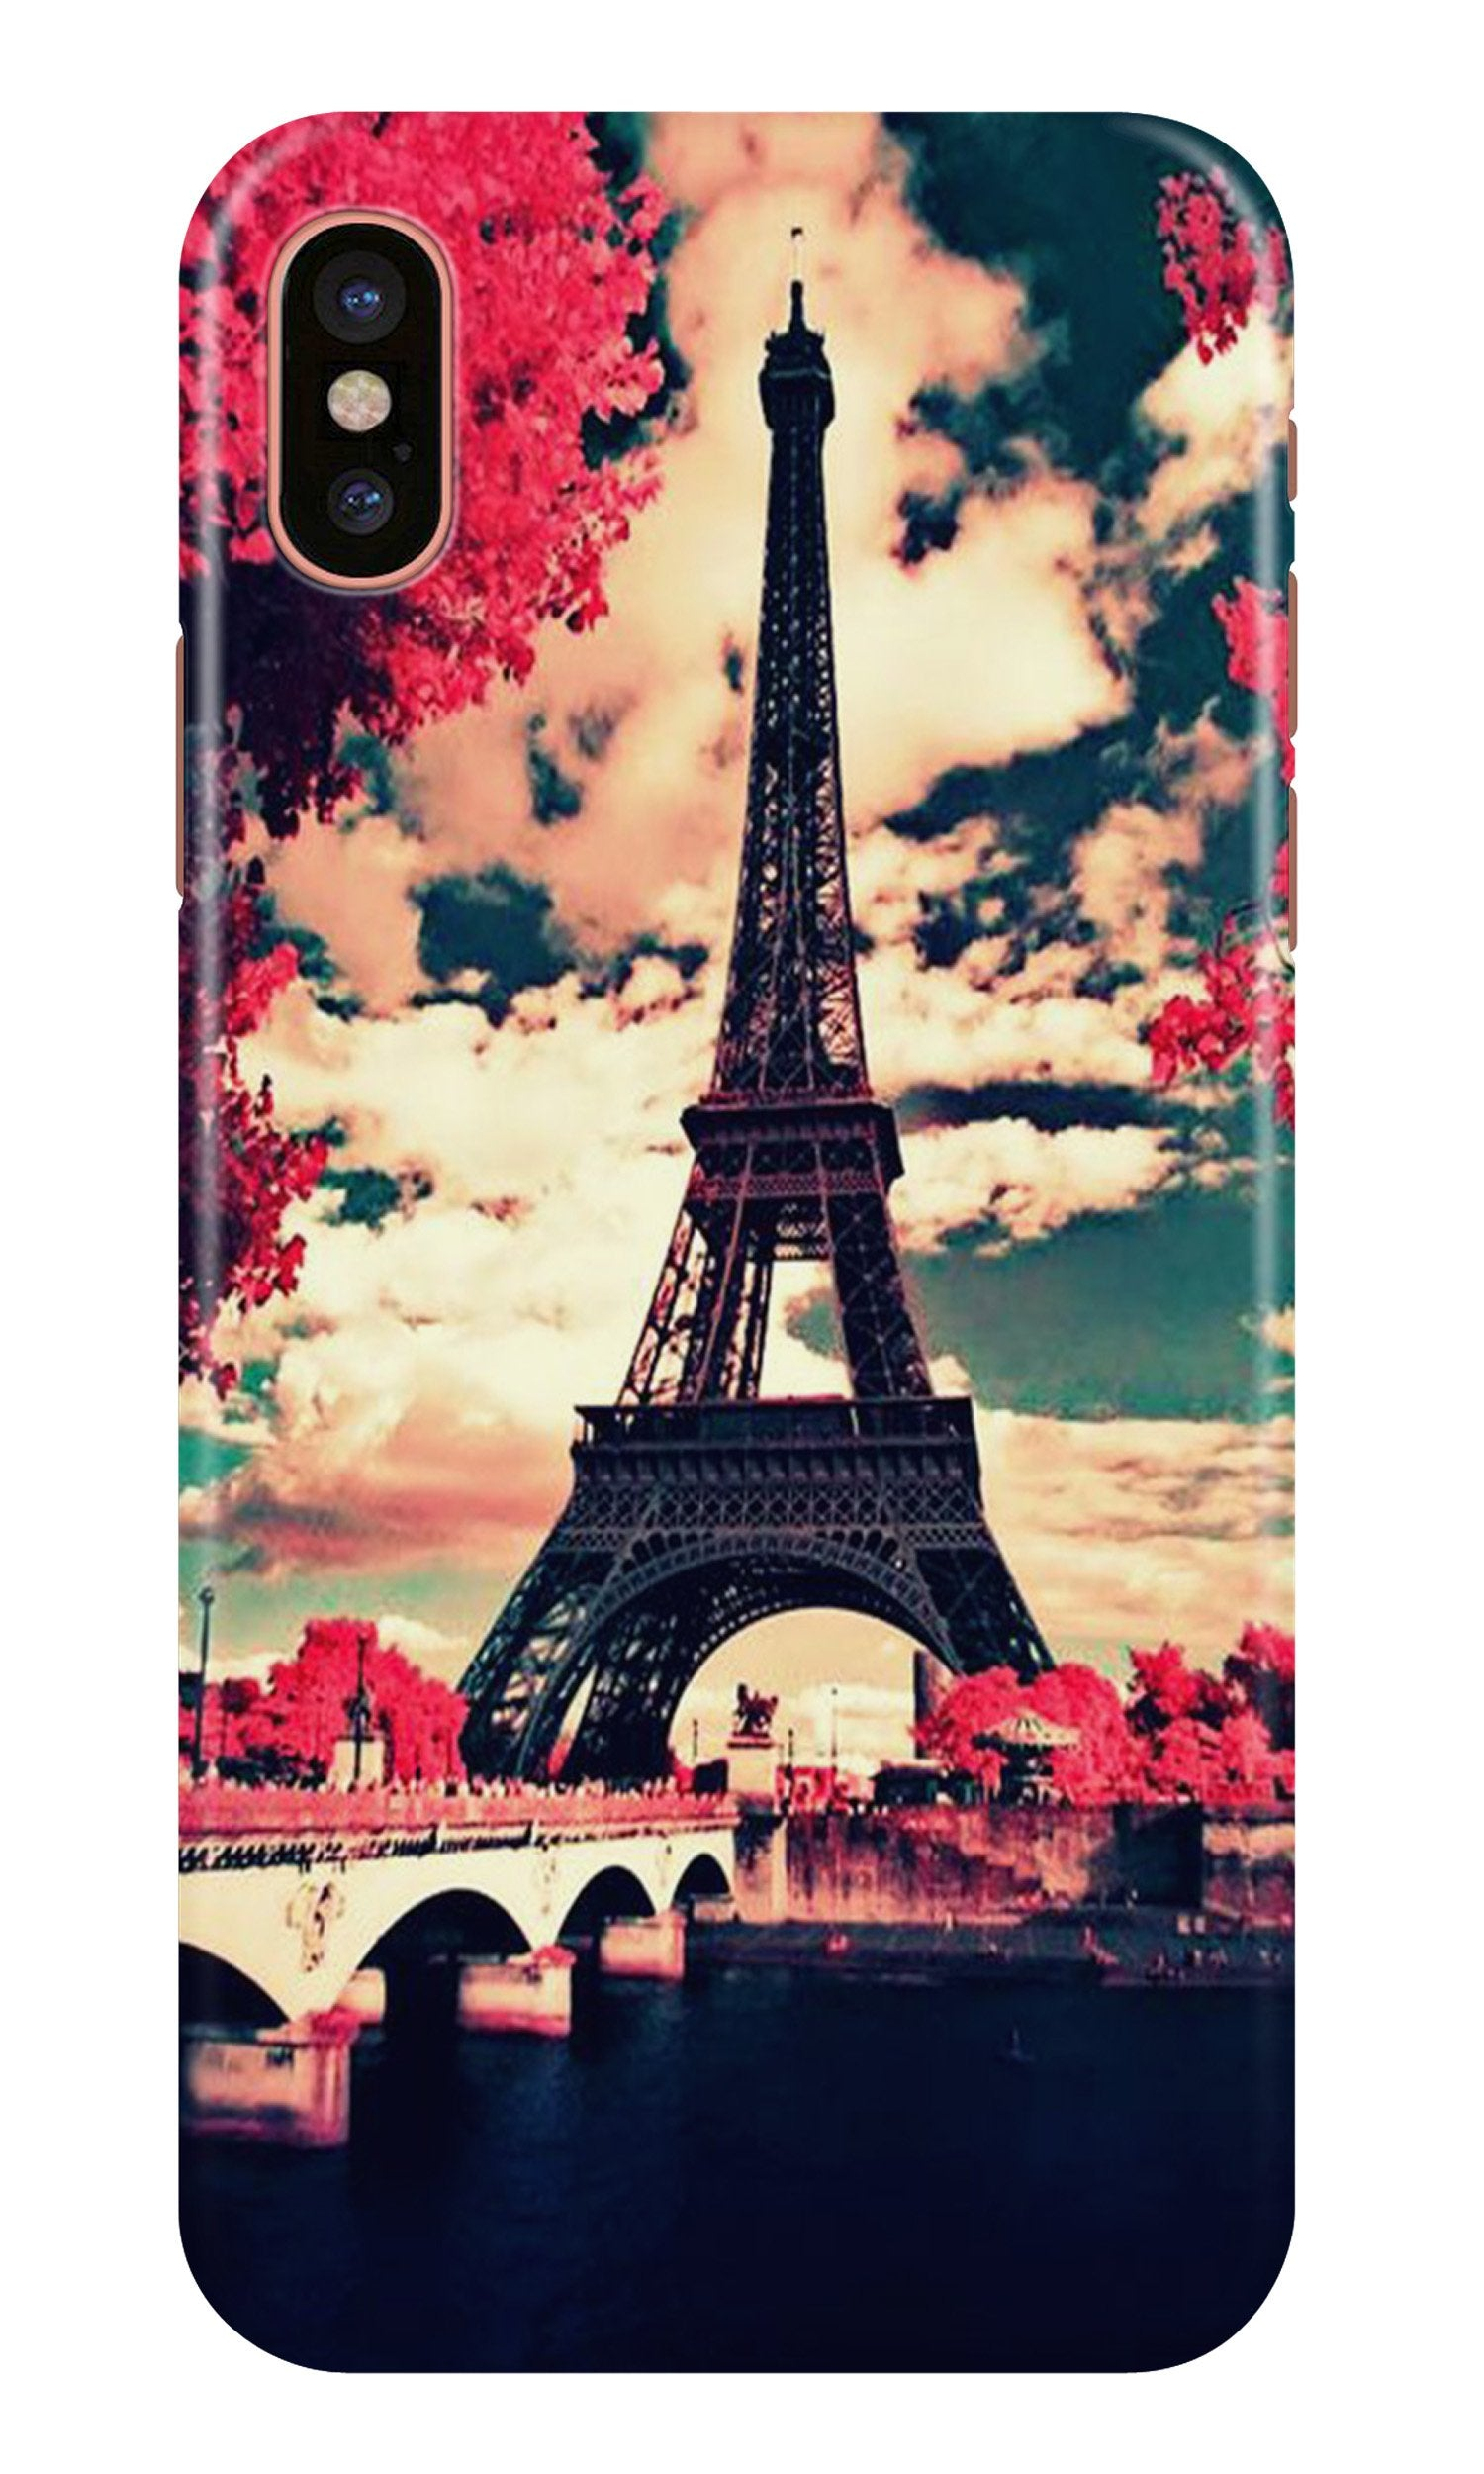 Eiffel Tower Case for iPhone Xr (Design No. 212)